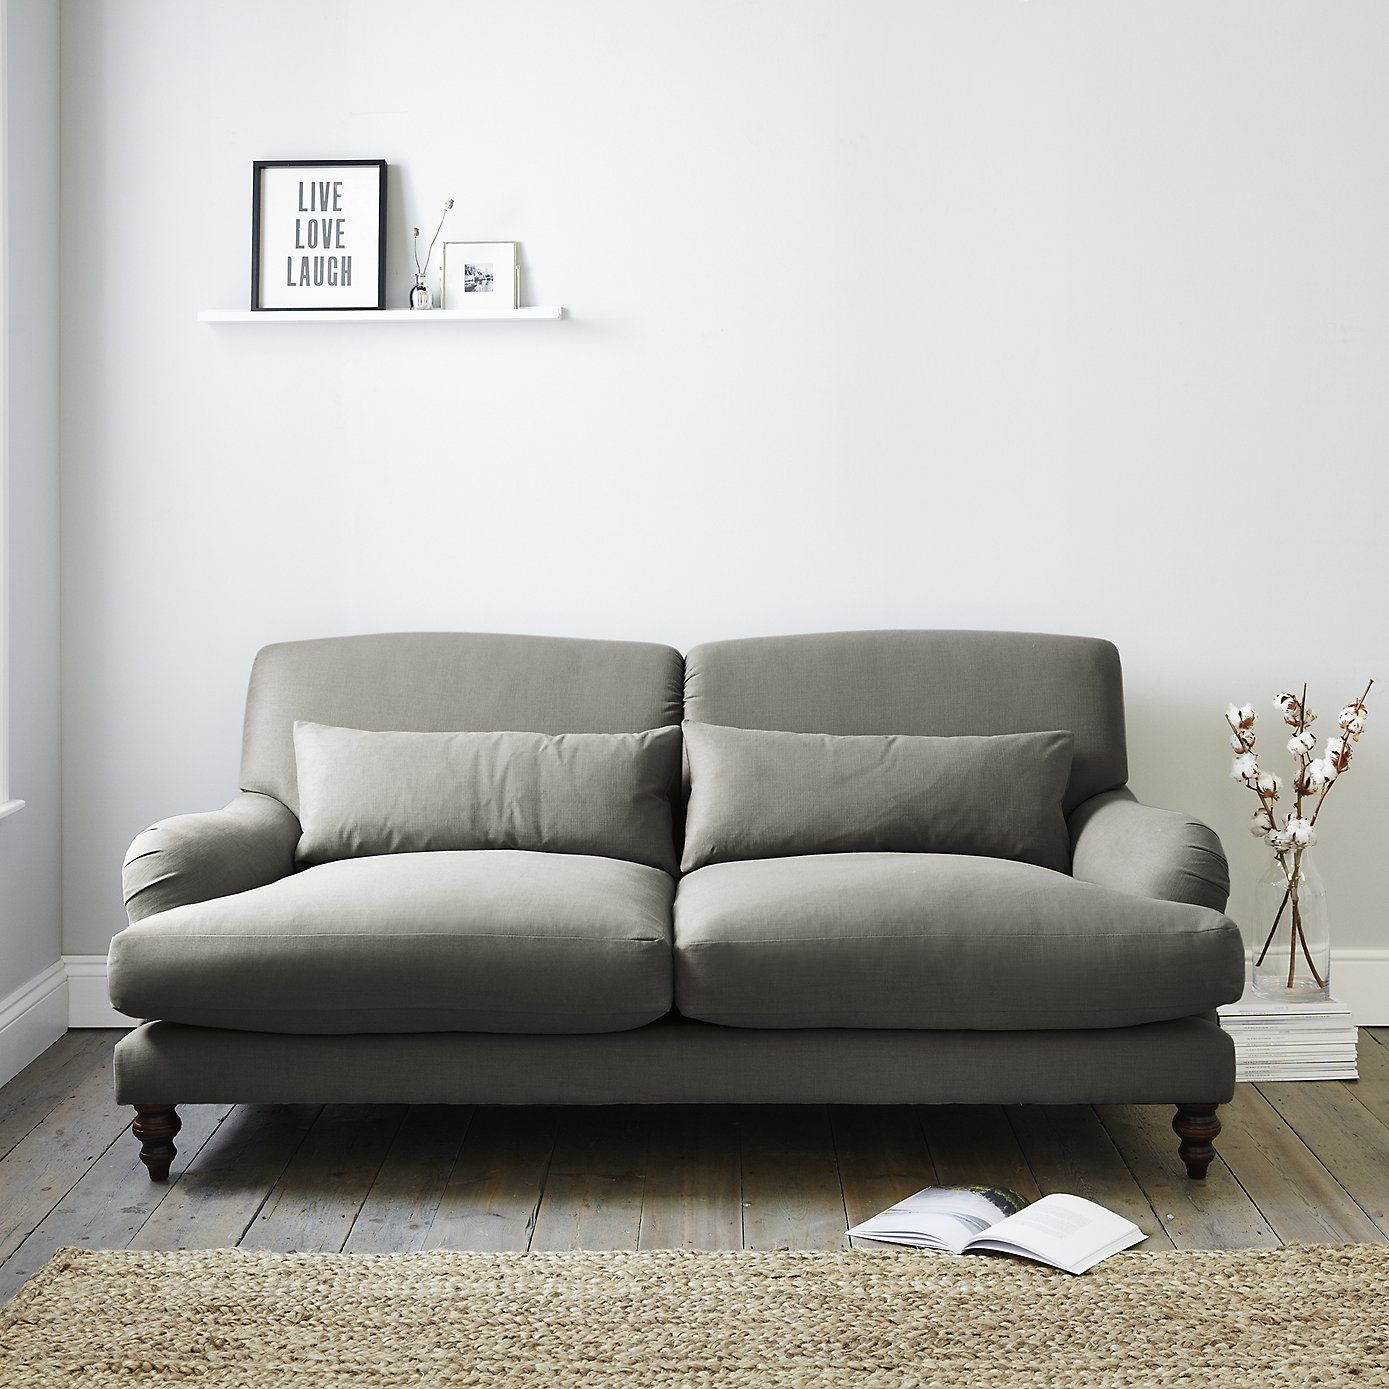 Petersham Sofa Cotton Pearl Silver or Grey